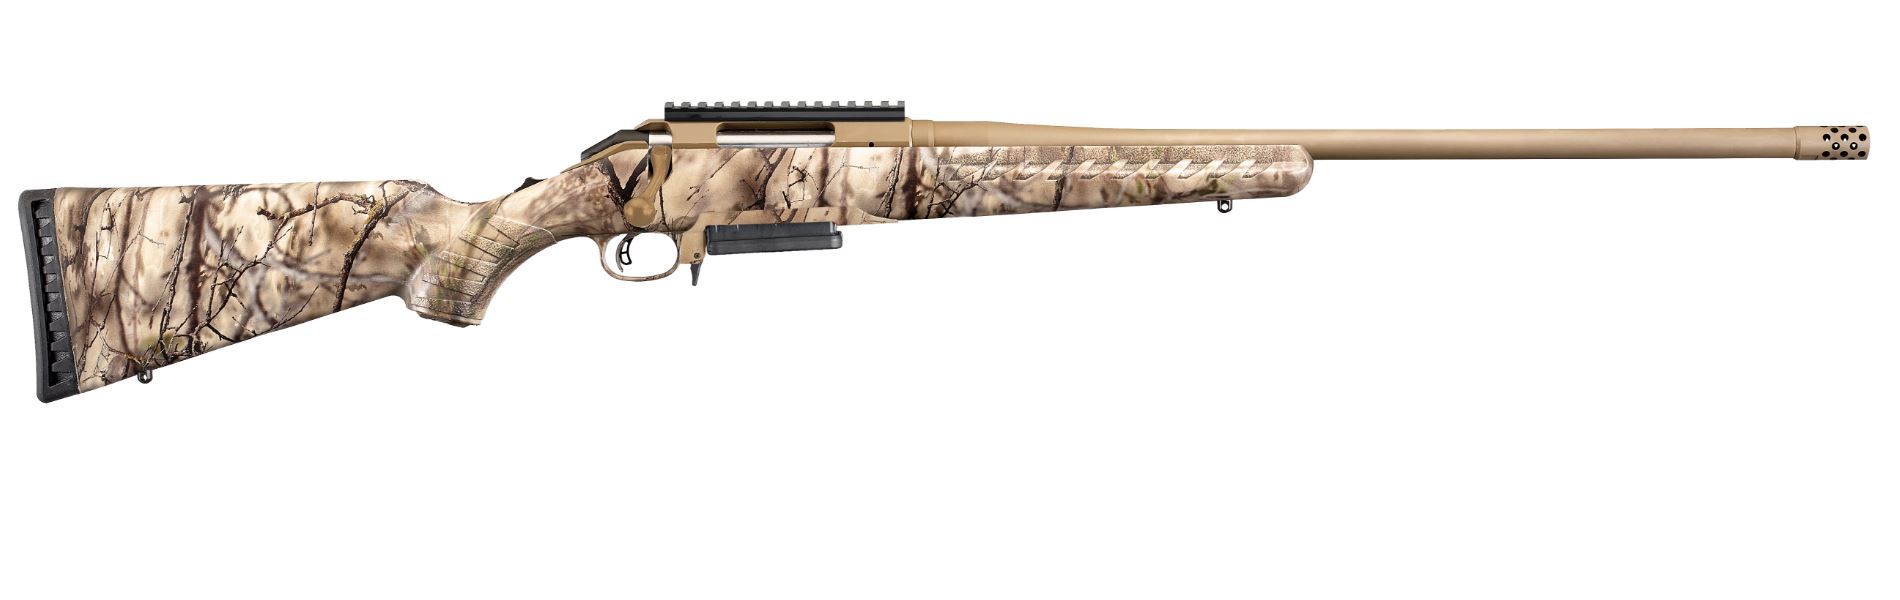 Ruger American Rifle 450 Bushmaster